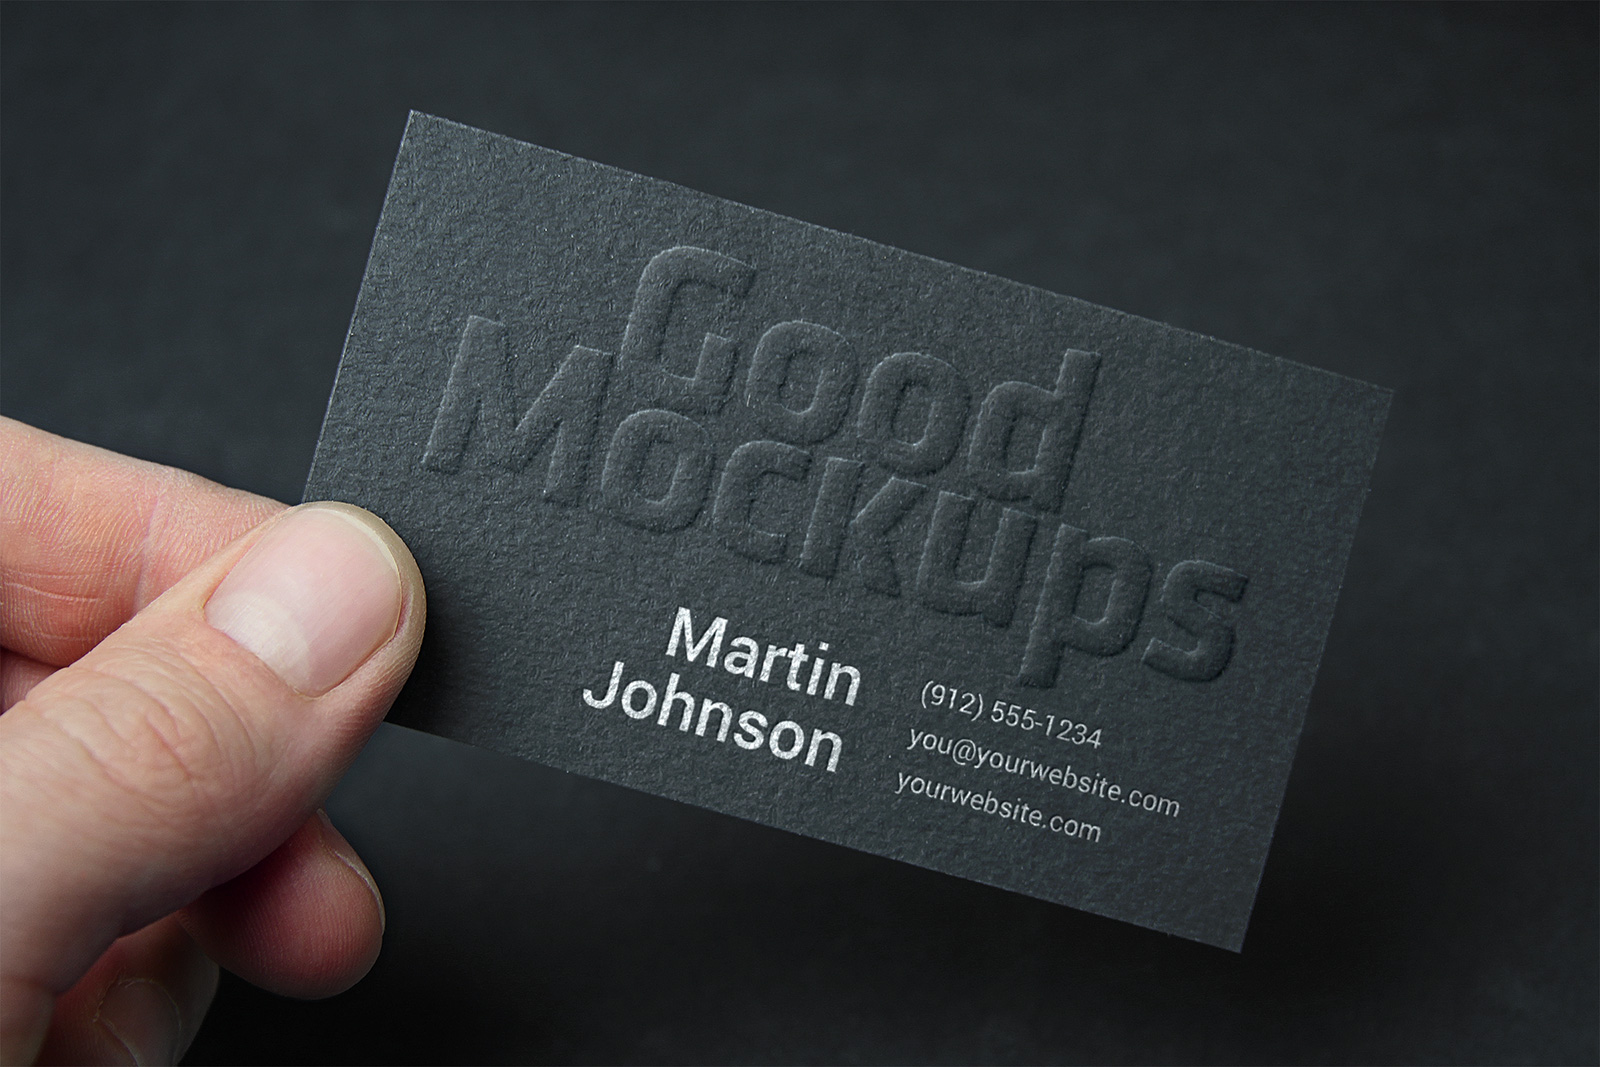 Free embossed business card logo mockup psd good mockups free embossed business card logo mockup psd colourmoves